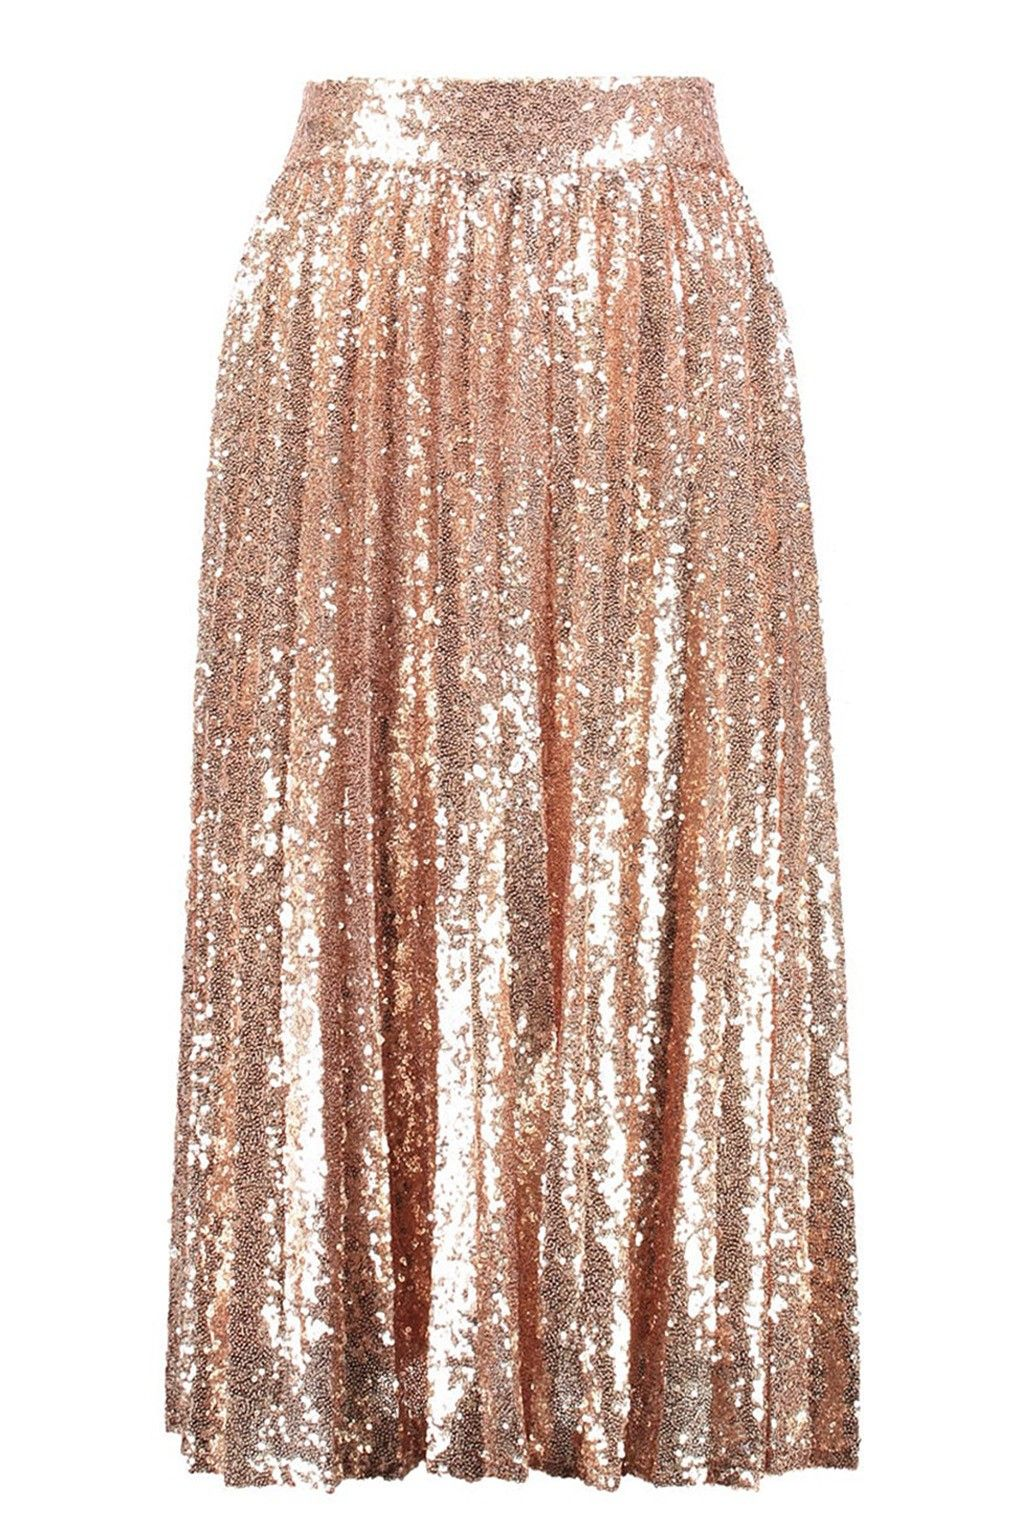 TFNC Boho Rose Gold Sequin Skirt | Wishlist Fashion | Pinterest ...